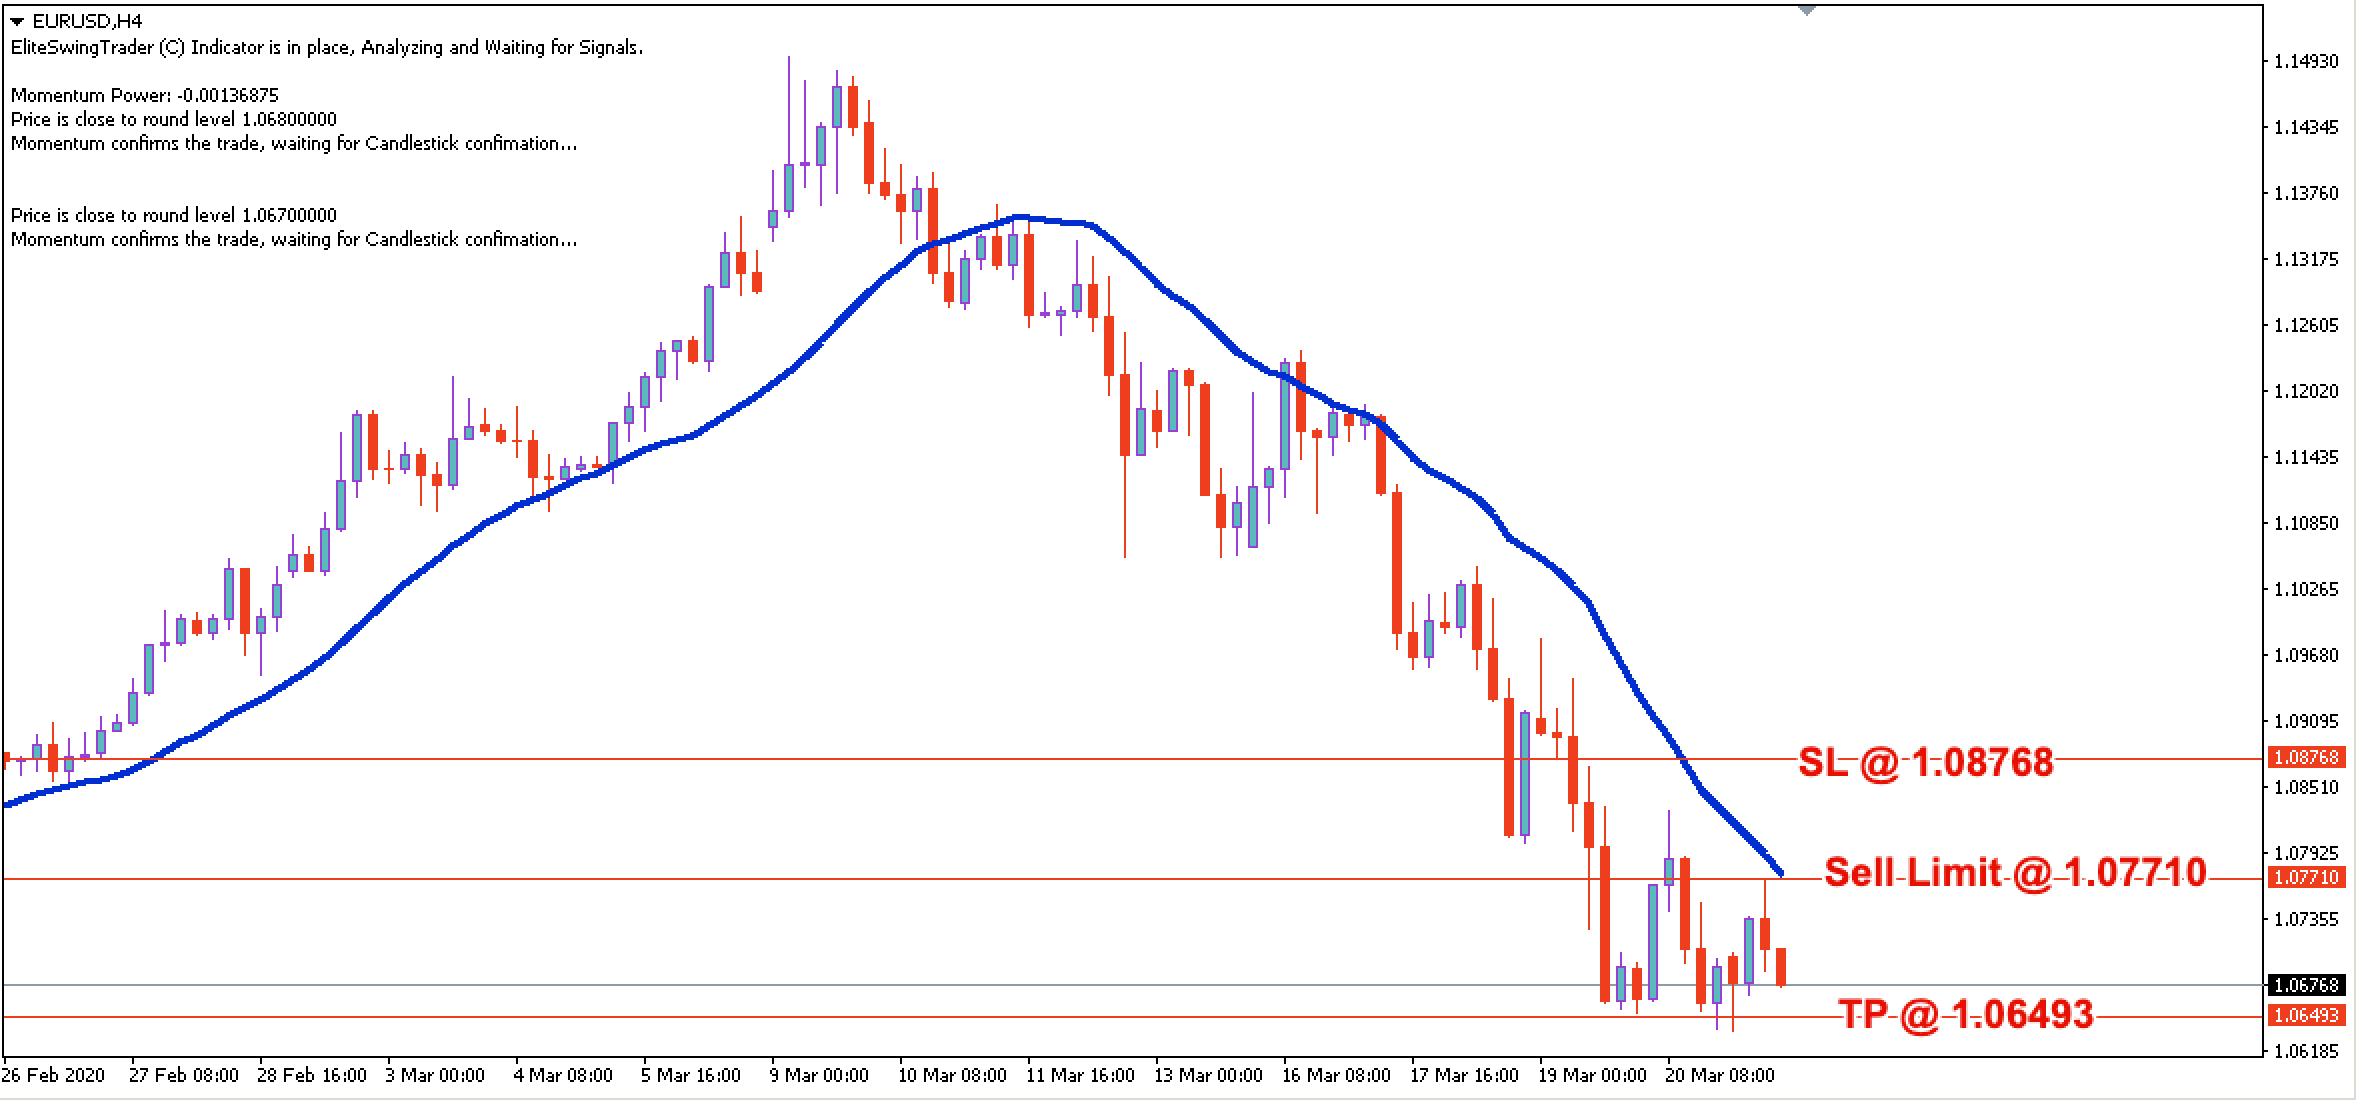 EUR/USD Daily Price Forecast – 23rd March 2020